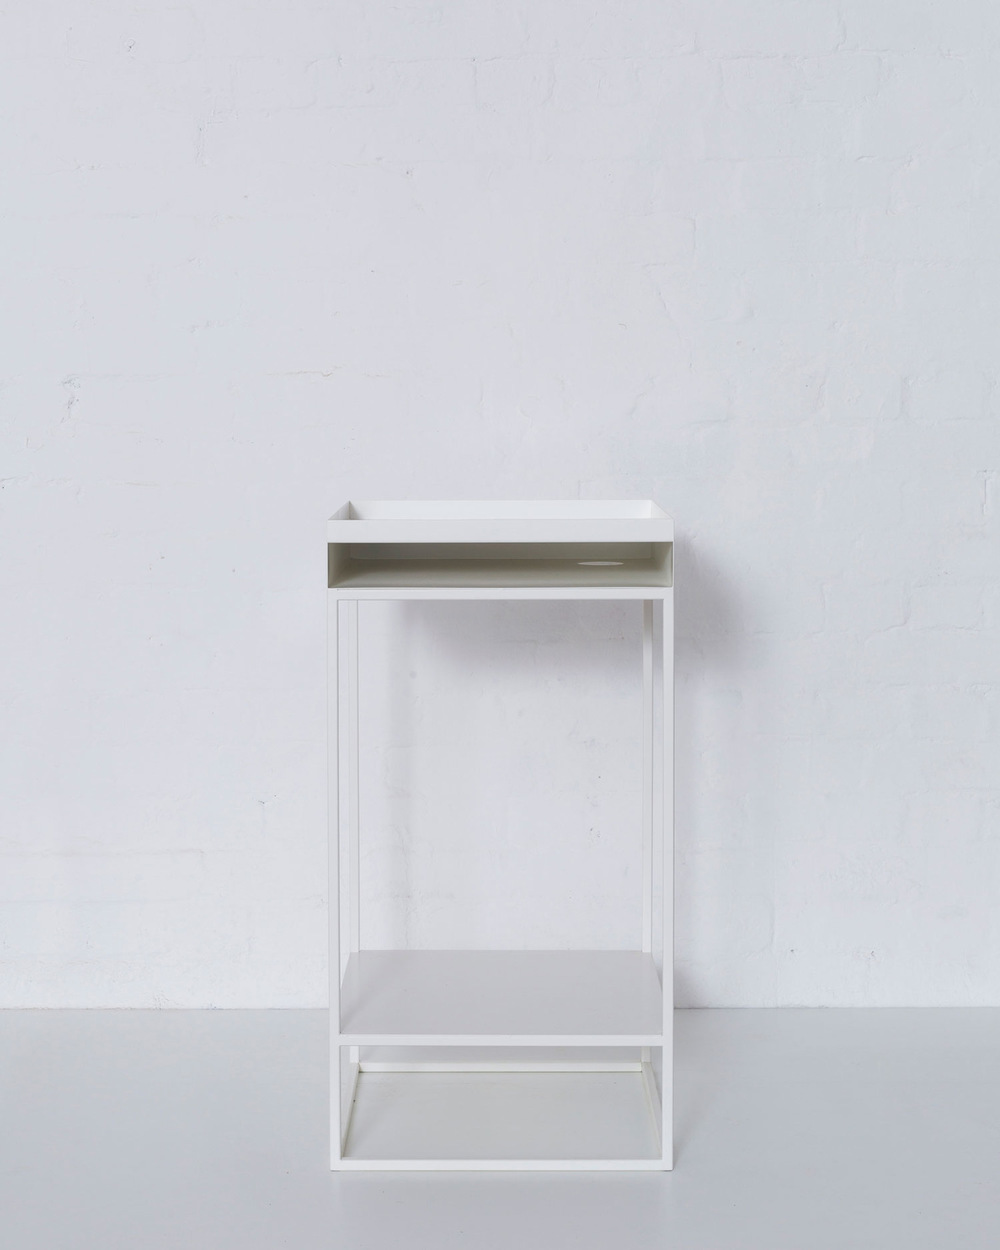 Merrett Houmøller Architects - Corner table in powder coated steel